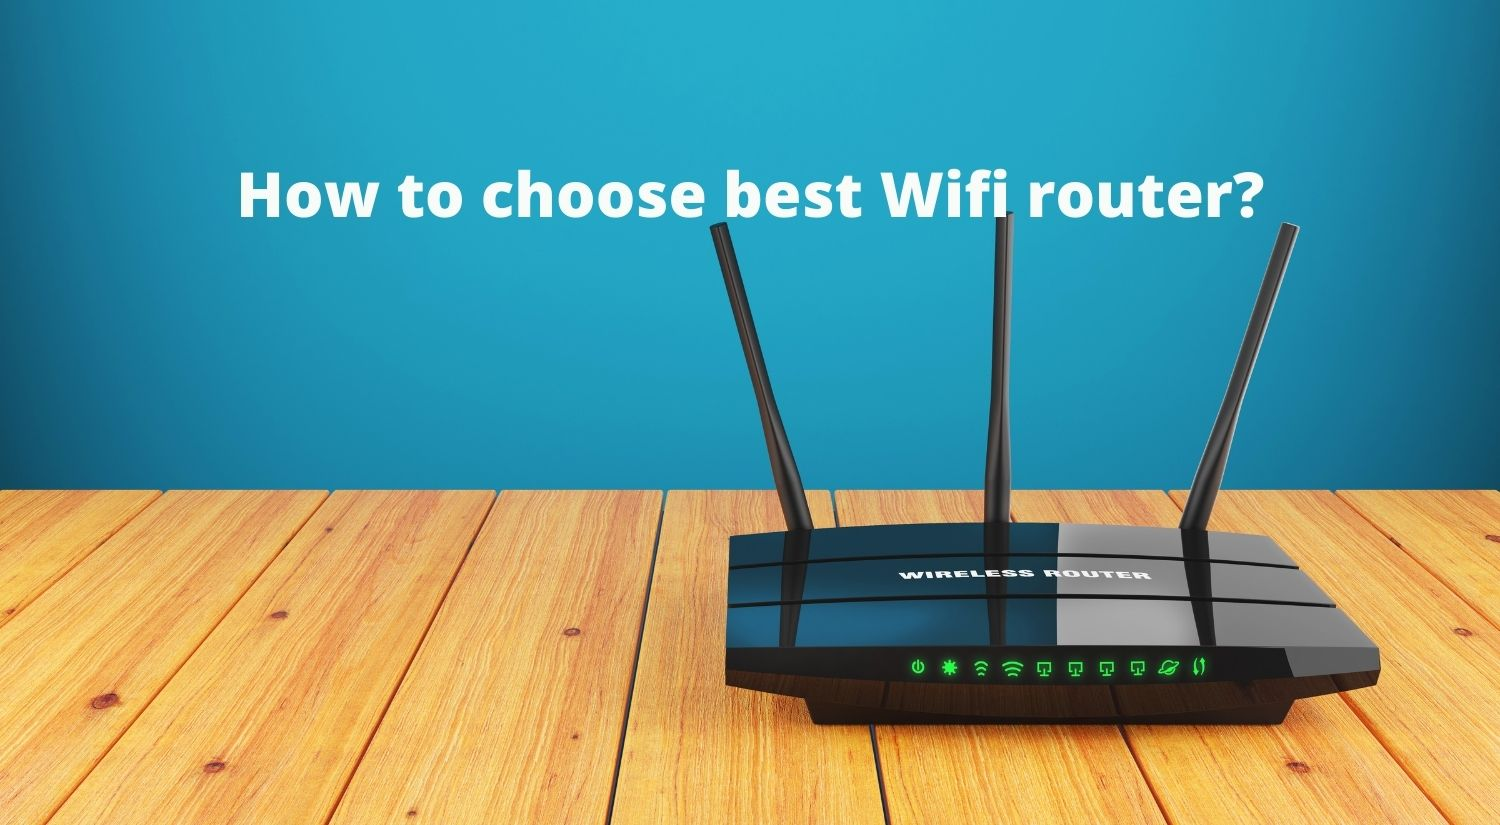 How to choose best wifi router